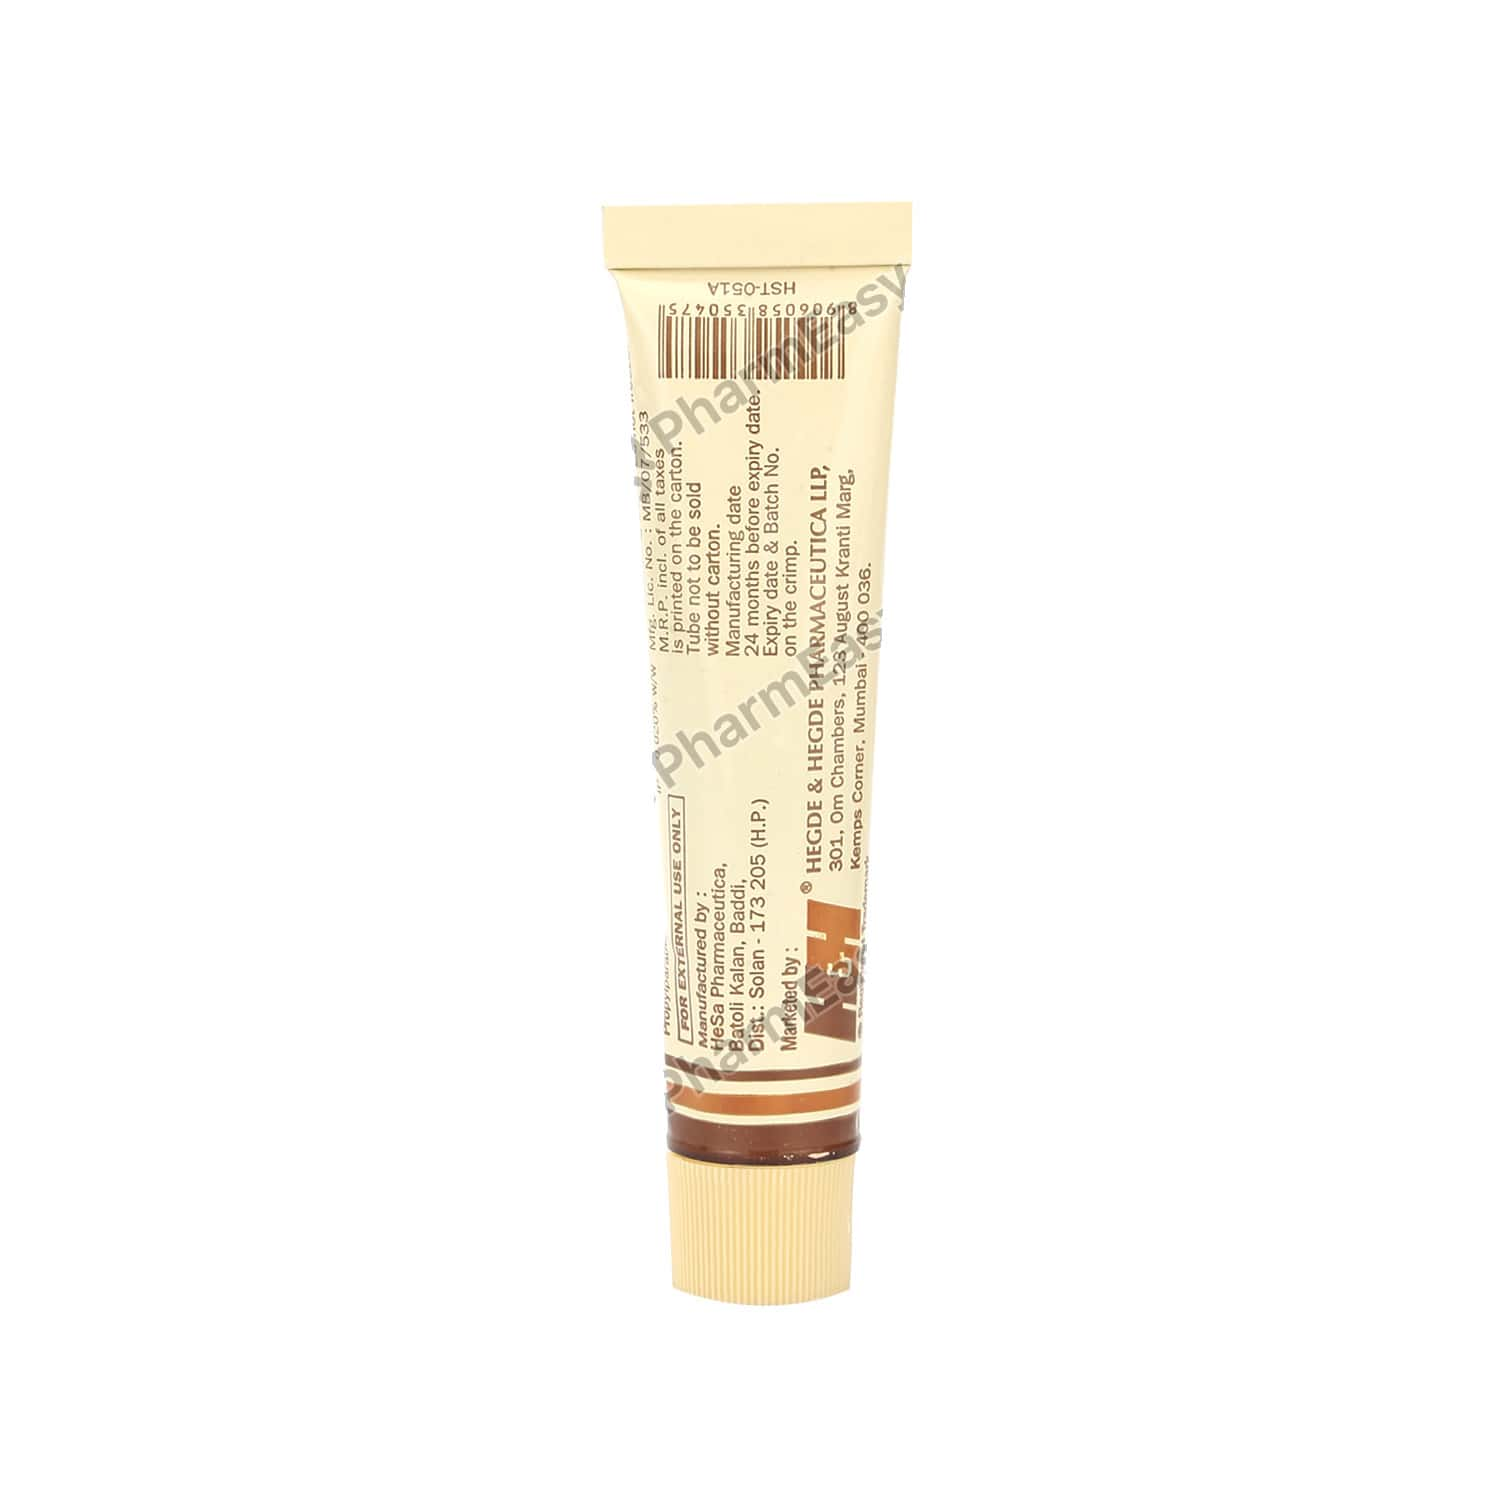 Propynate Nf Lotion 25ml